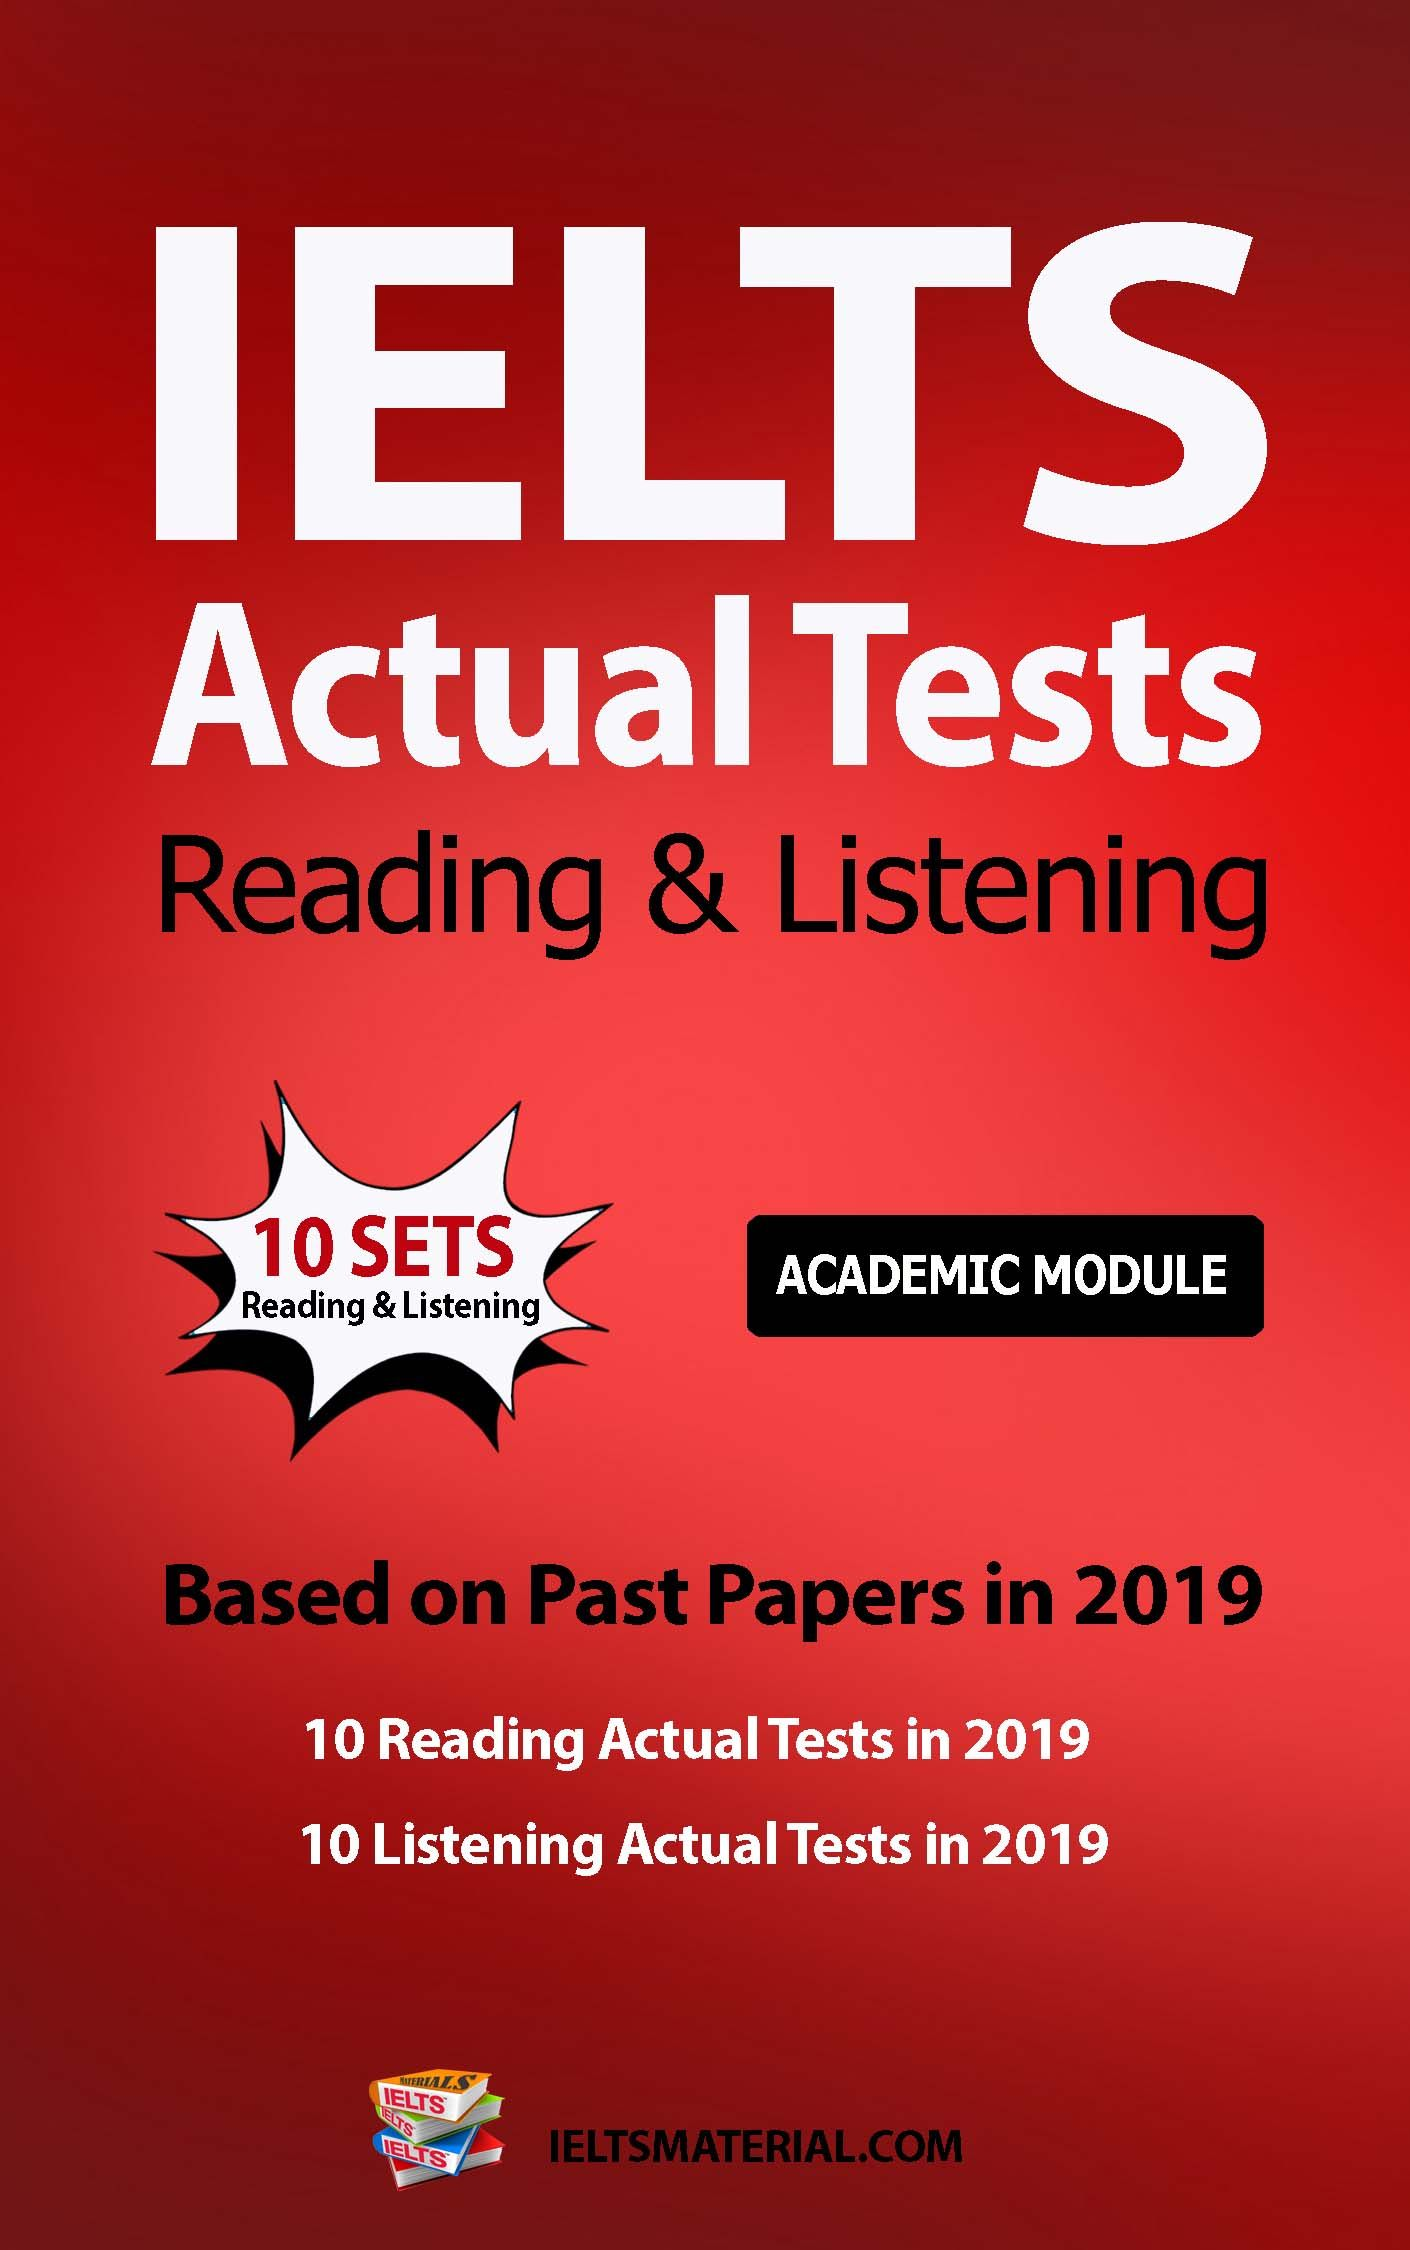 Recent IELTS Speaking Test in Canada - July 2018 & Band 9